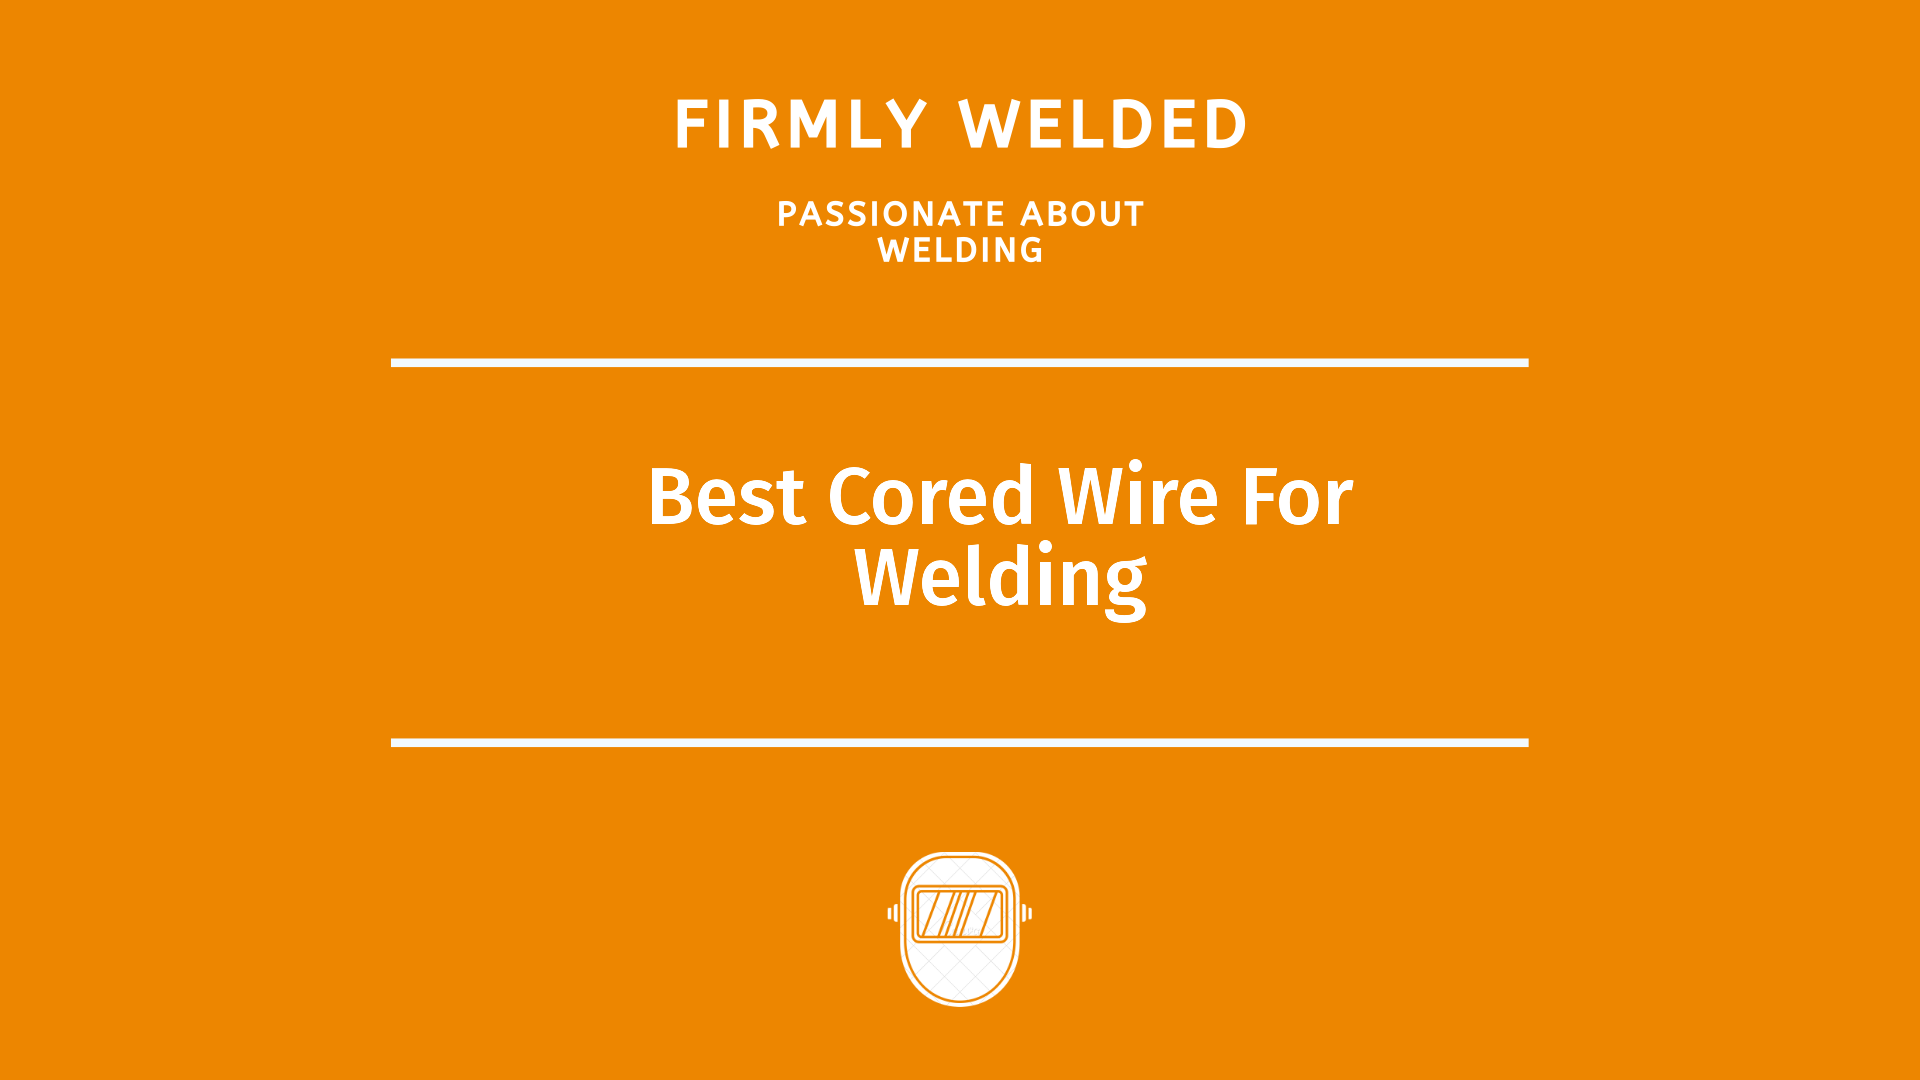 Best Cored Wire For Welding